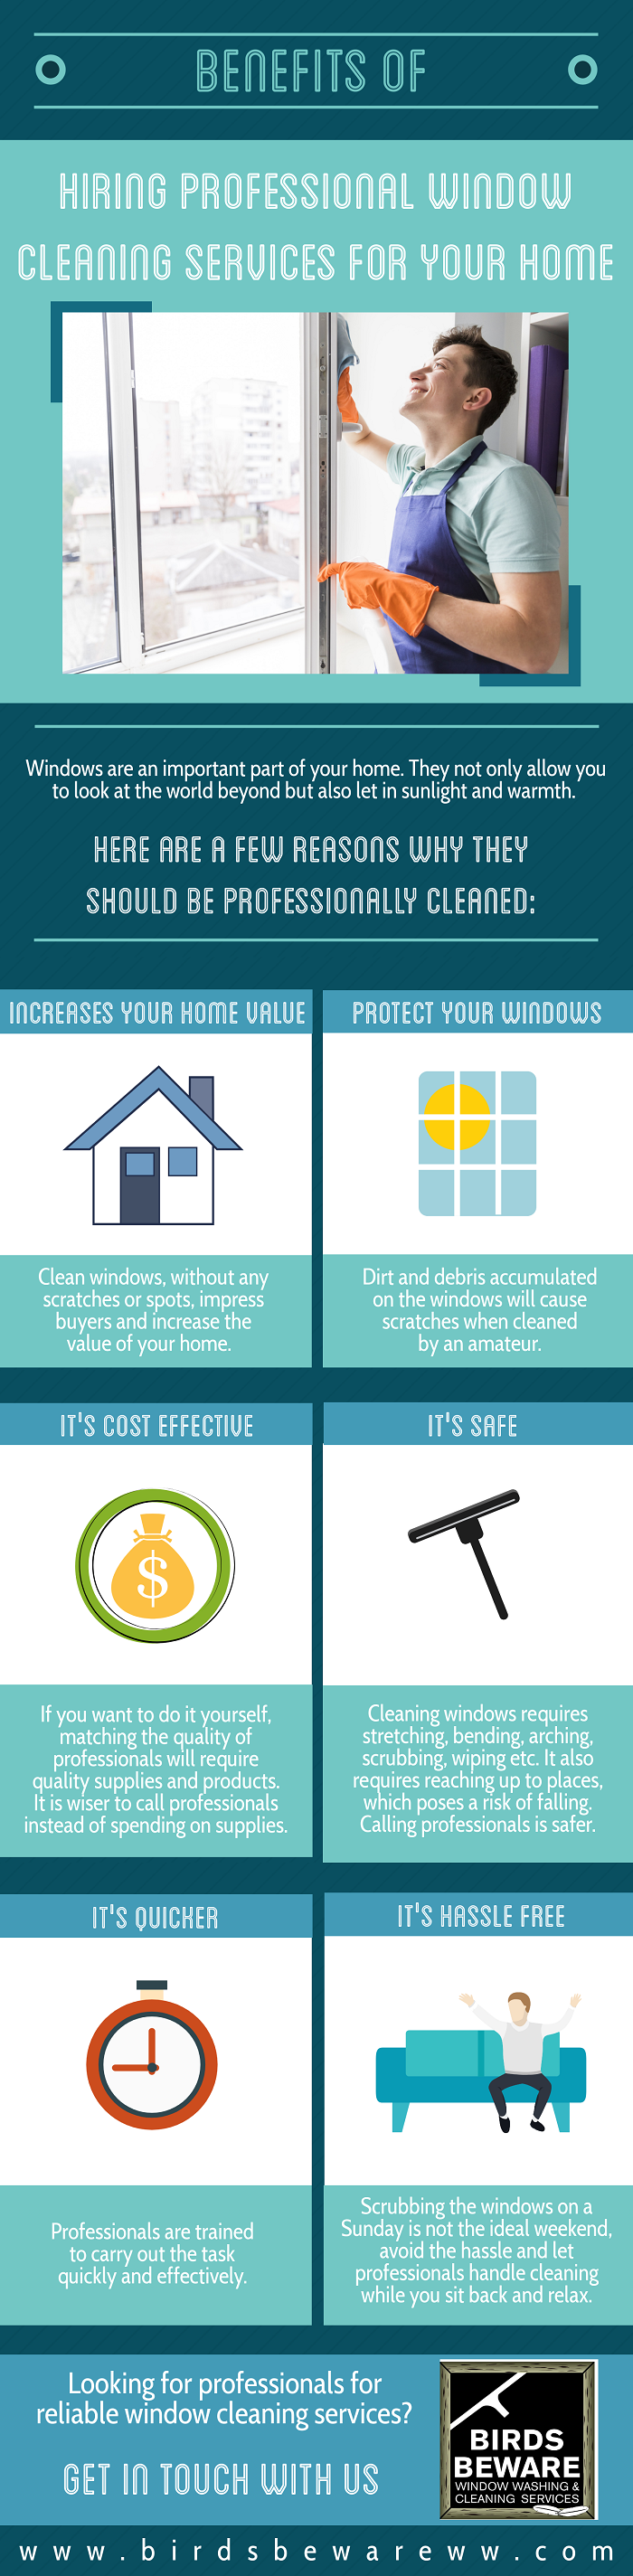 Benefits of Hiring Professional Window Cleaning Services For Your Home